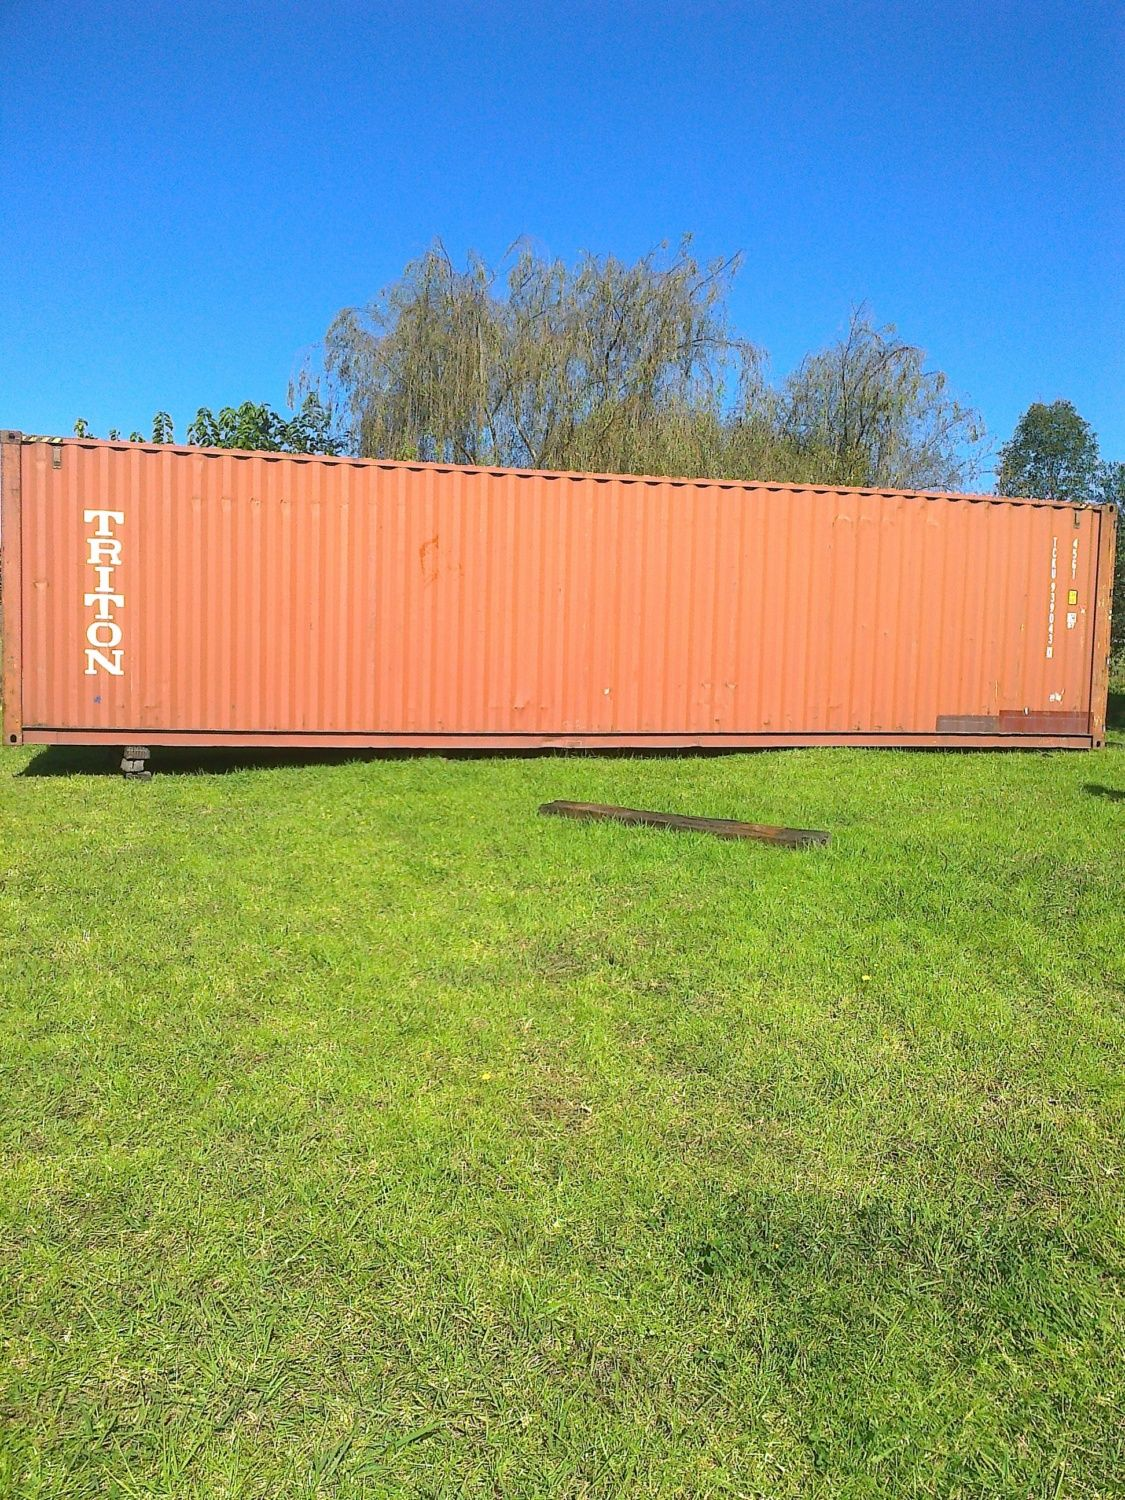 here is my 40 foots shipping container converted into 12 breeders coops . 